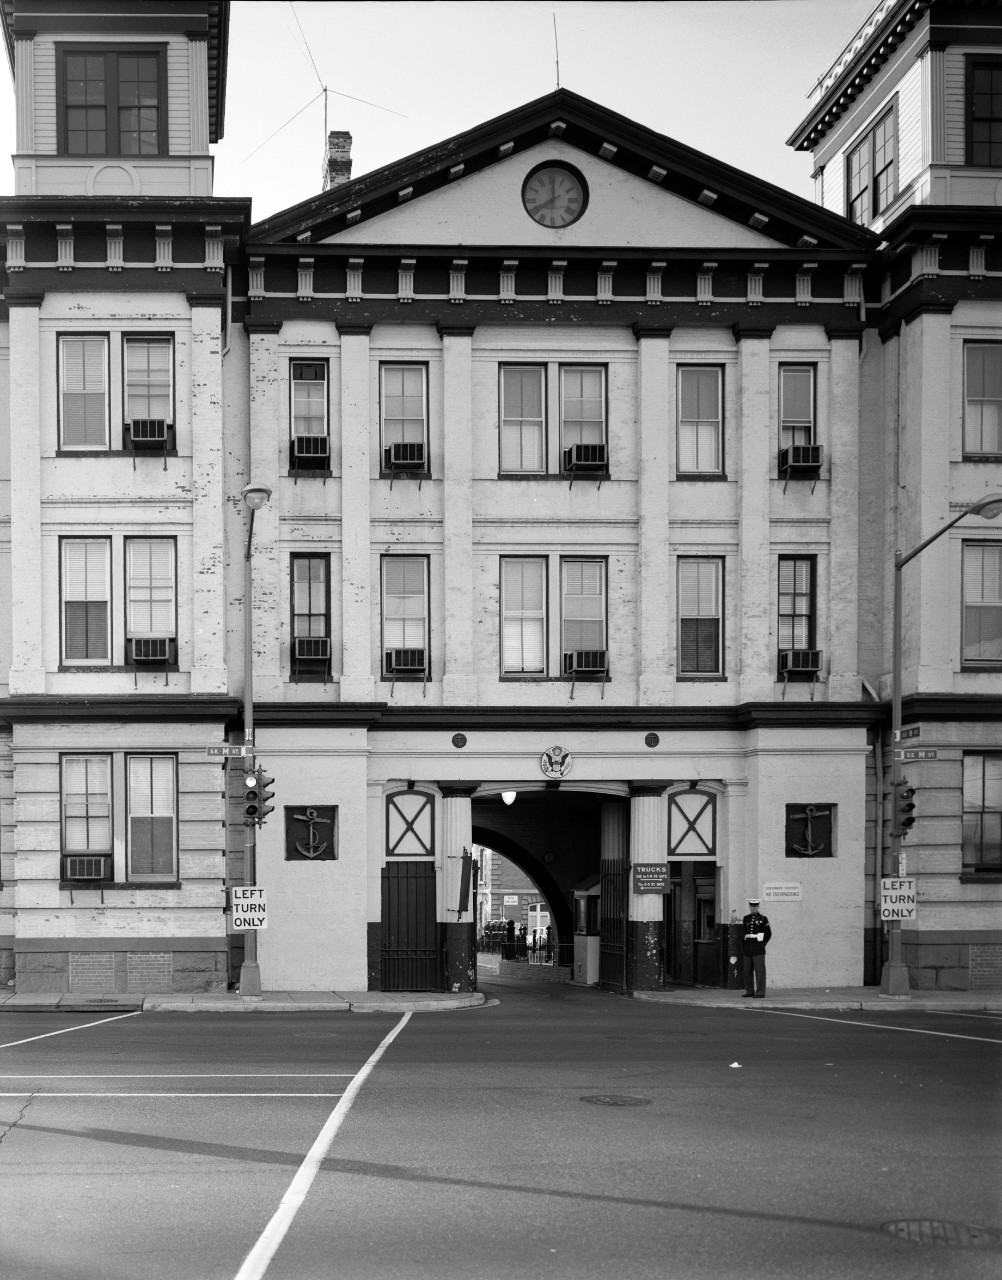 LC-DIG-HEC-030628:  Latrobe Gate, Washington Navy Yard, 1965.    Latrobe Gate and M Streets, Southeast, Washington, D.C., November 1965, Marc Blair of the Historic American Buildings Survey. Note, U.S. Marine standing guard.   Courtesy of the Library of Congress.